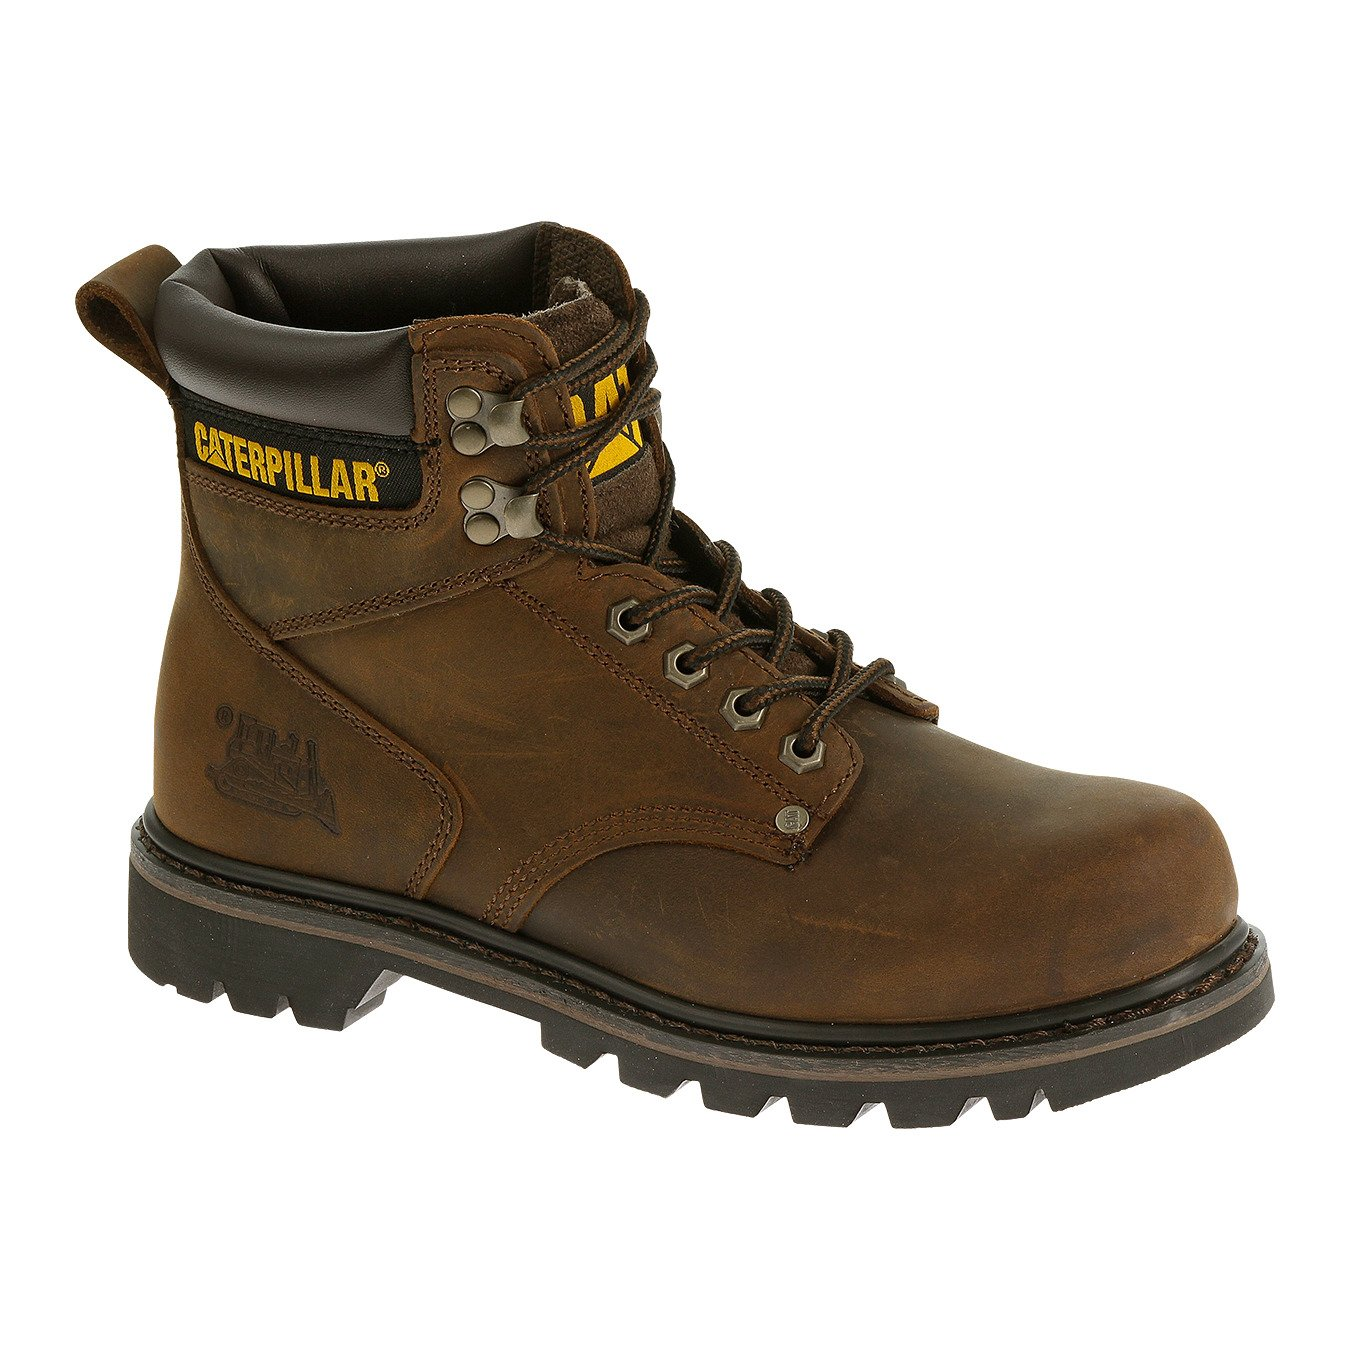 2f7b6195 Display product reviews for Cat Footwear Men's Second Shift EH Steel Toe  Lace Up Work Boots